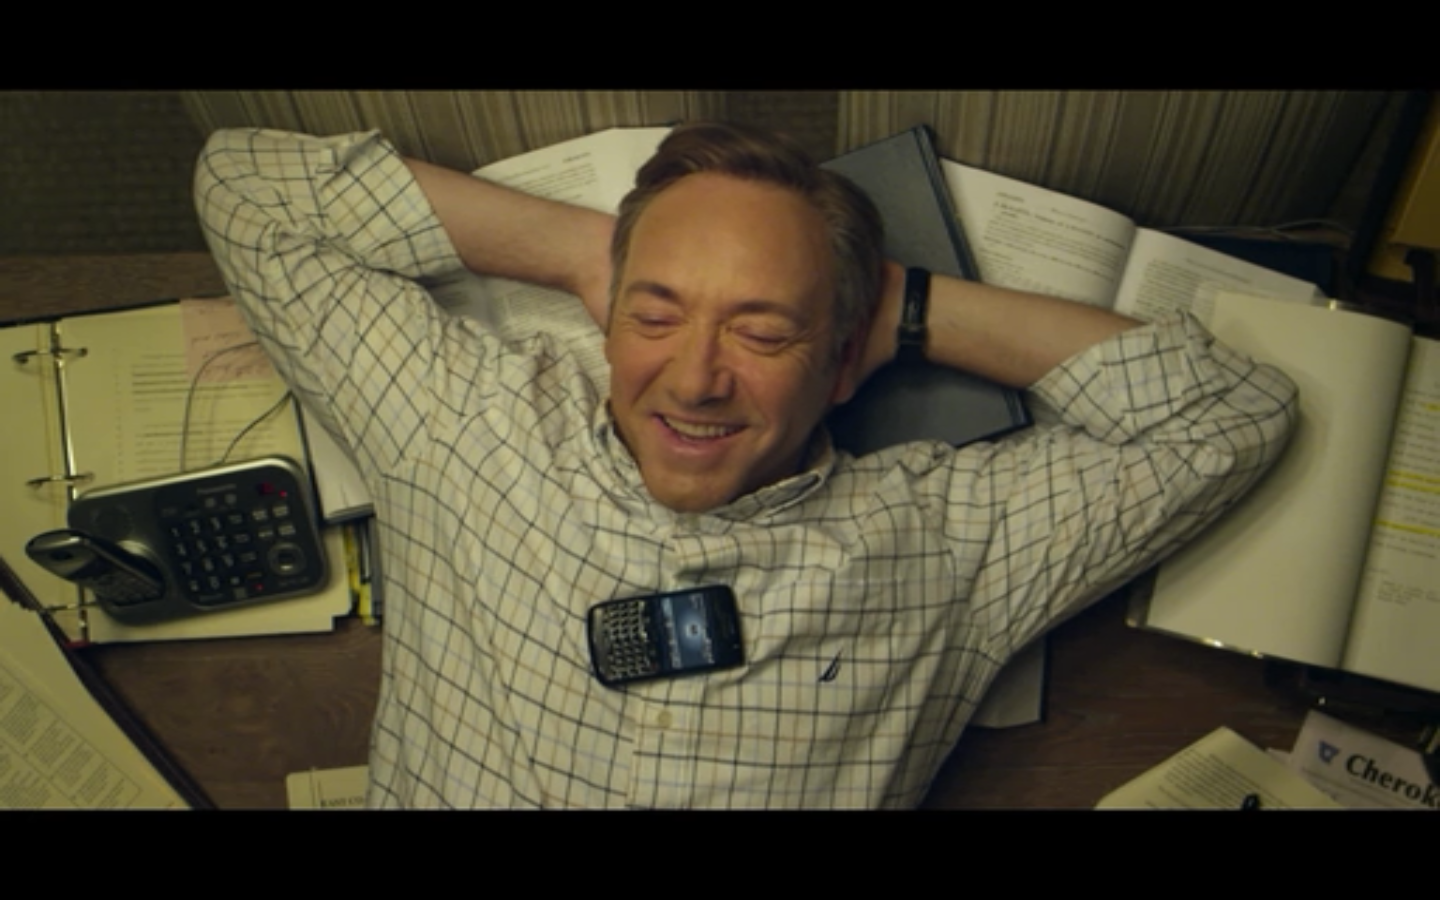 blackberry-product-placement.png